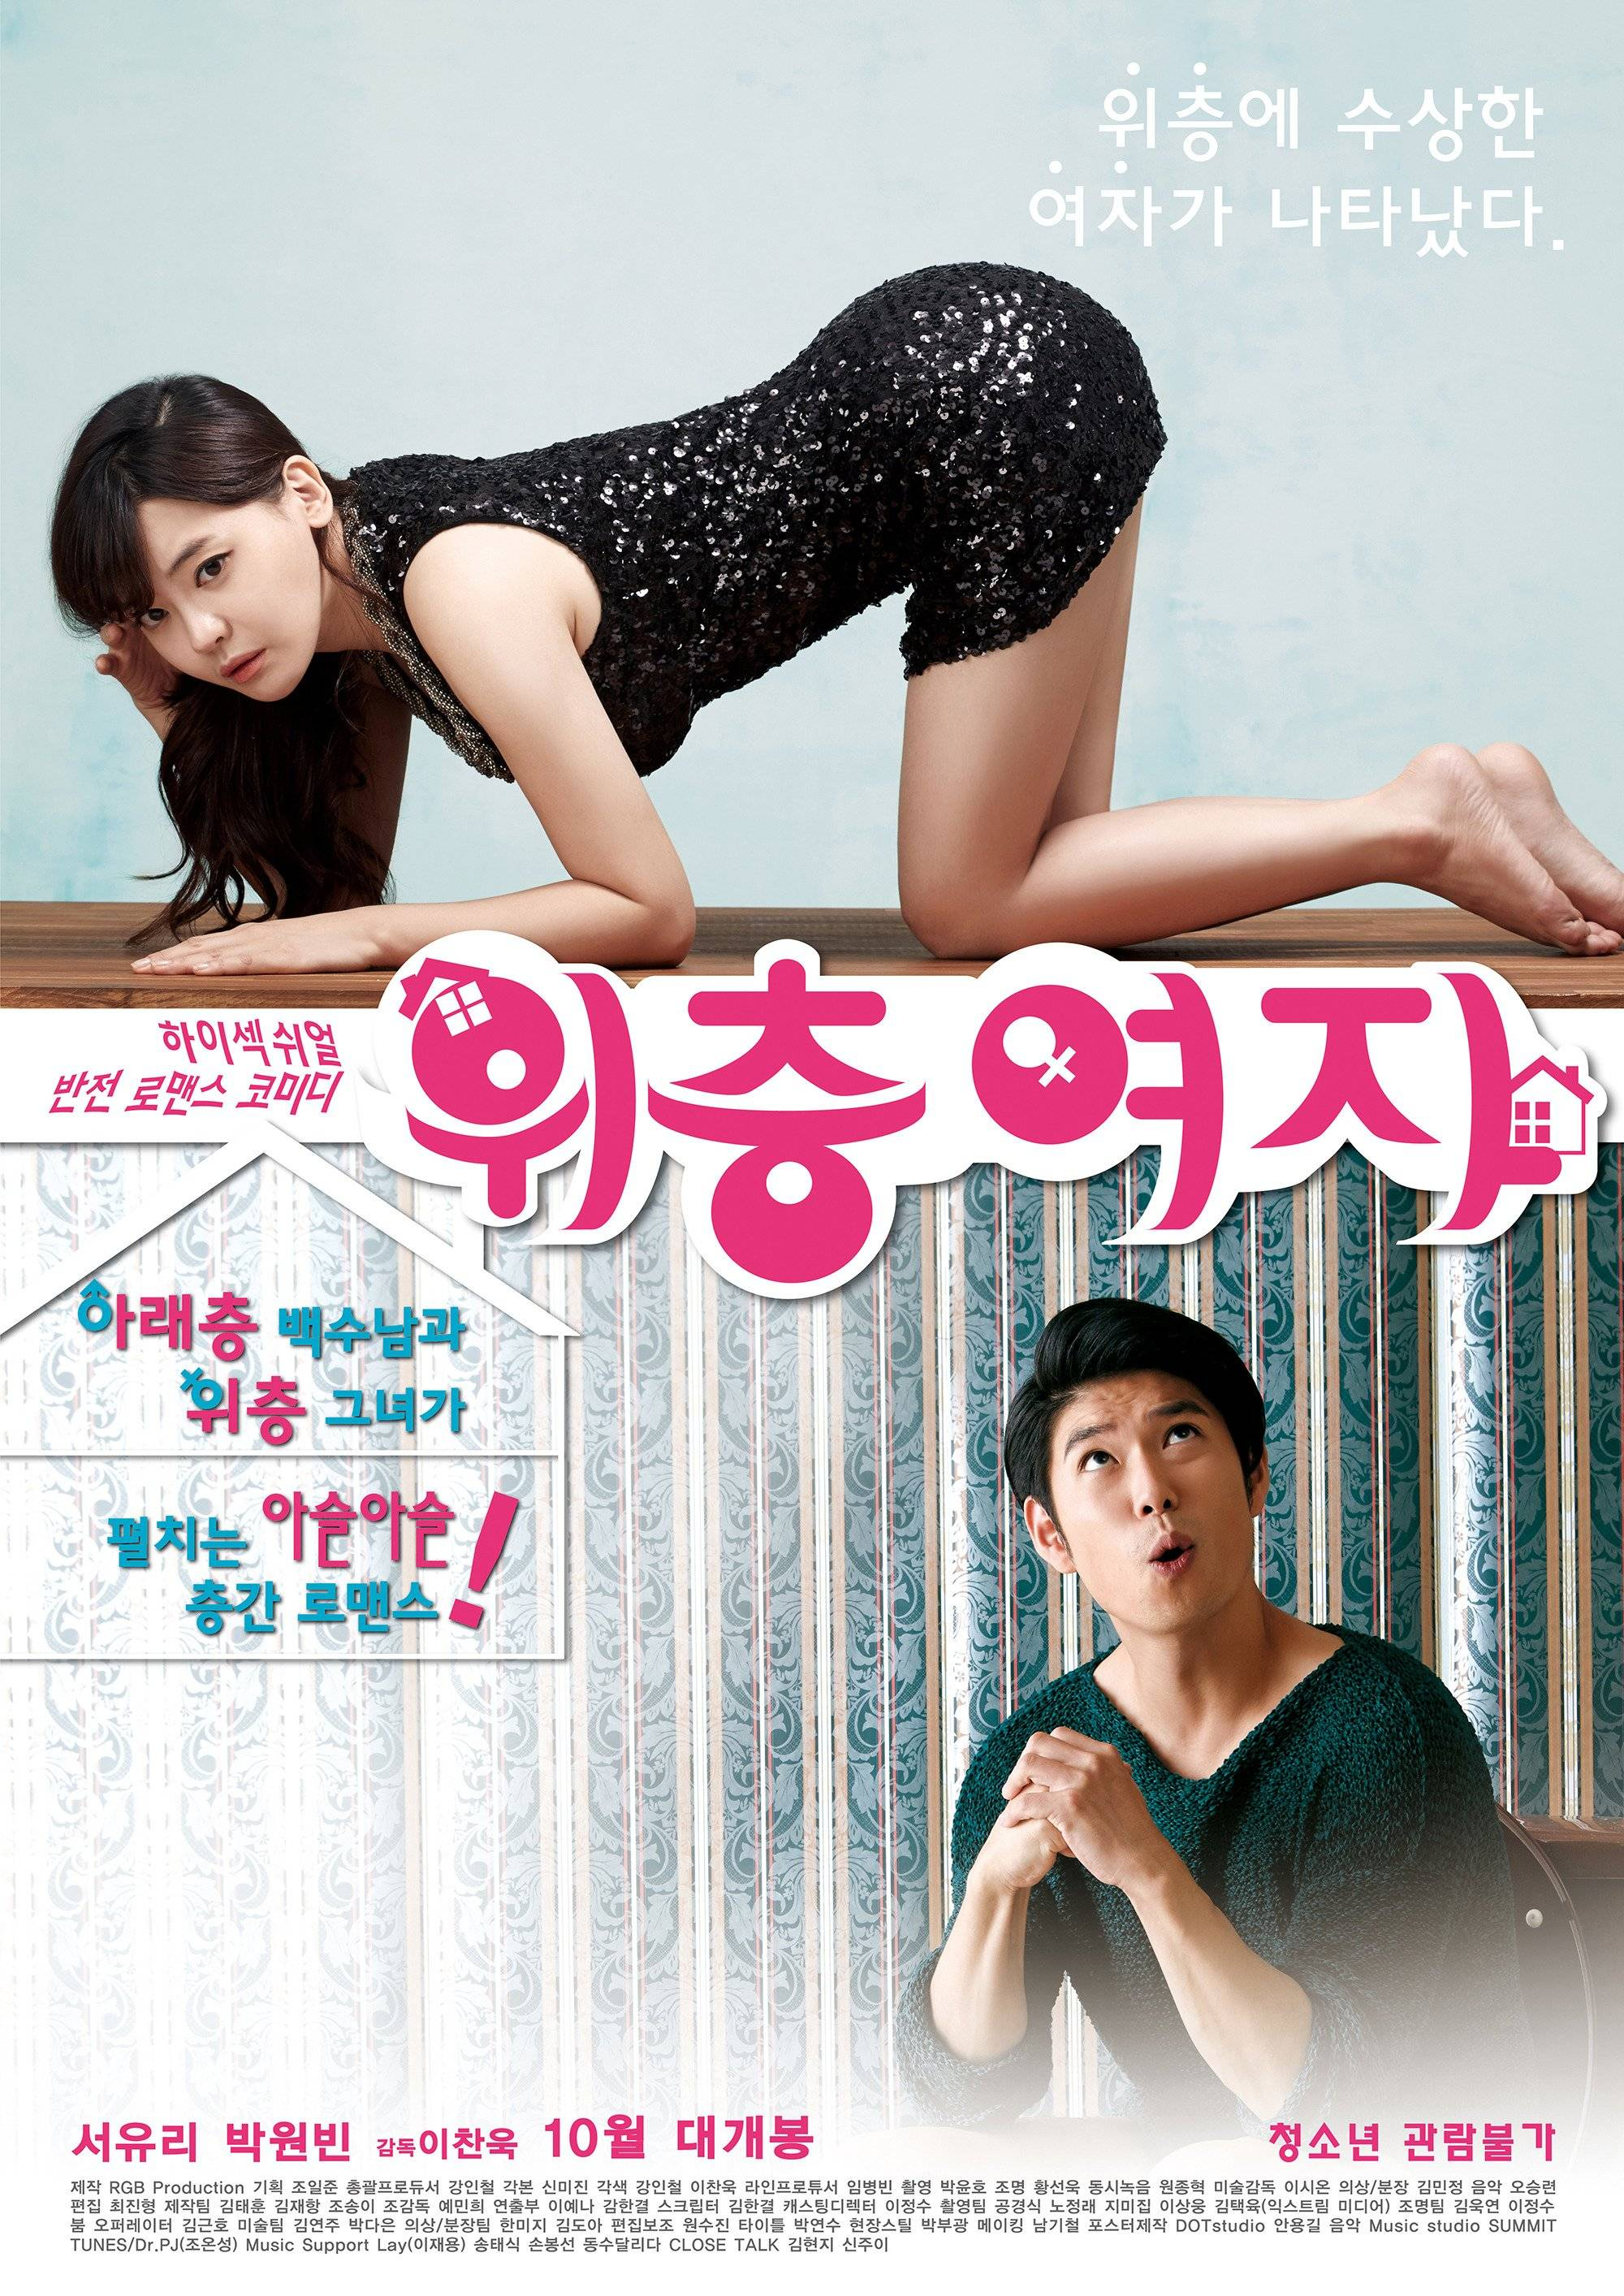 free, movie download, 2015, ryemovies, ganool, film korea update, The Woman Upstairs 2014 위층여자, film semi 18+, Yuri Seo, Park Won-bin, Kim Yoon-jeon, Khan Mohammad Asaduzzman